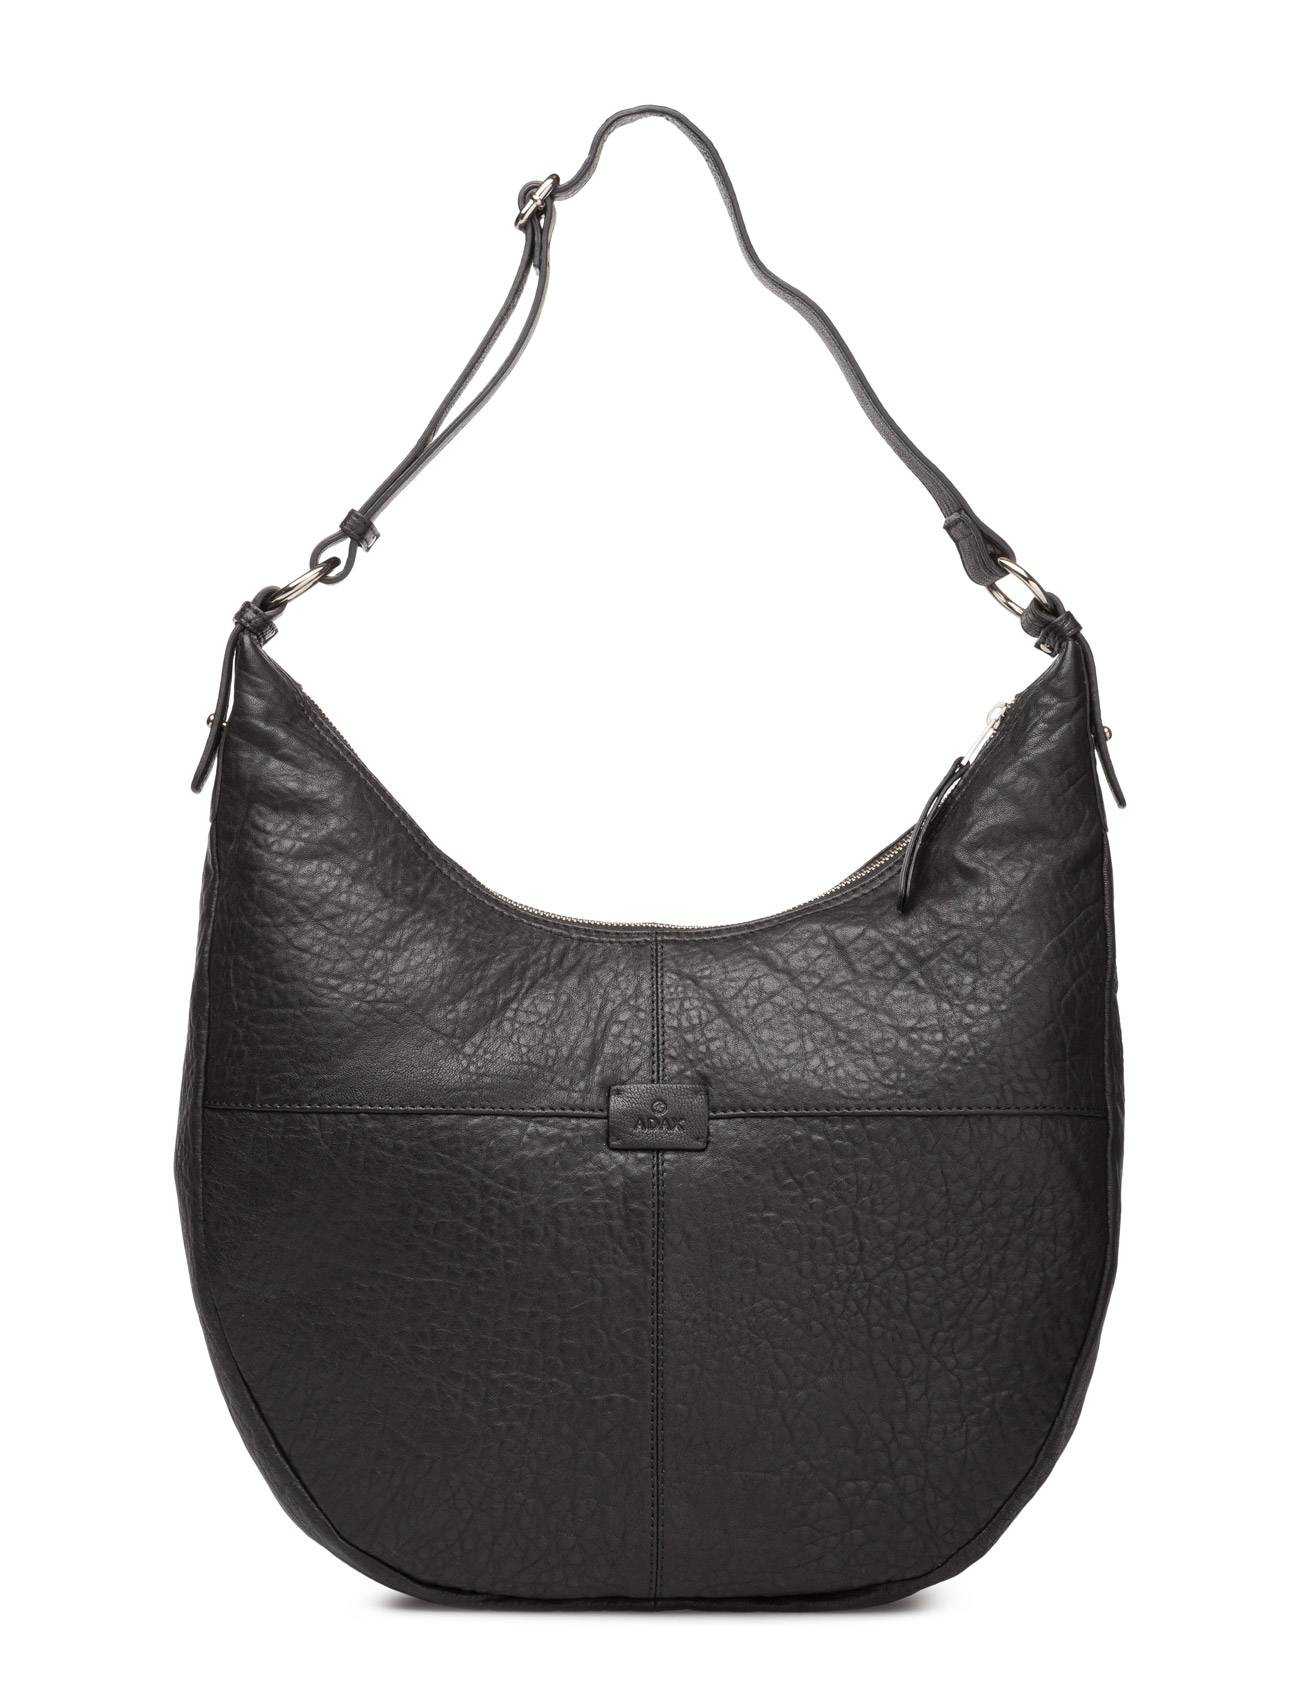 Adax Bologna Shoulder Bag Naja